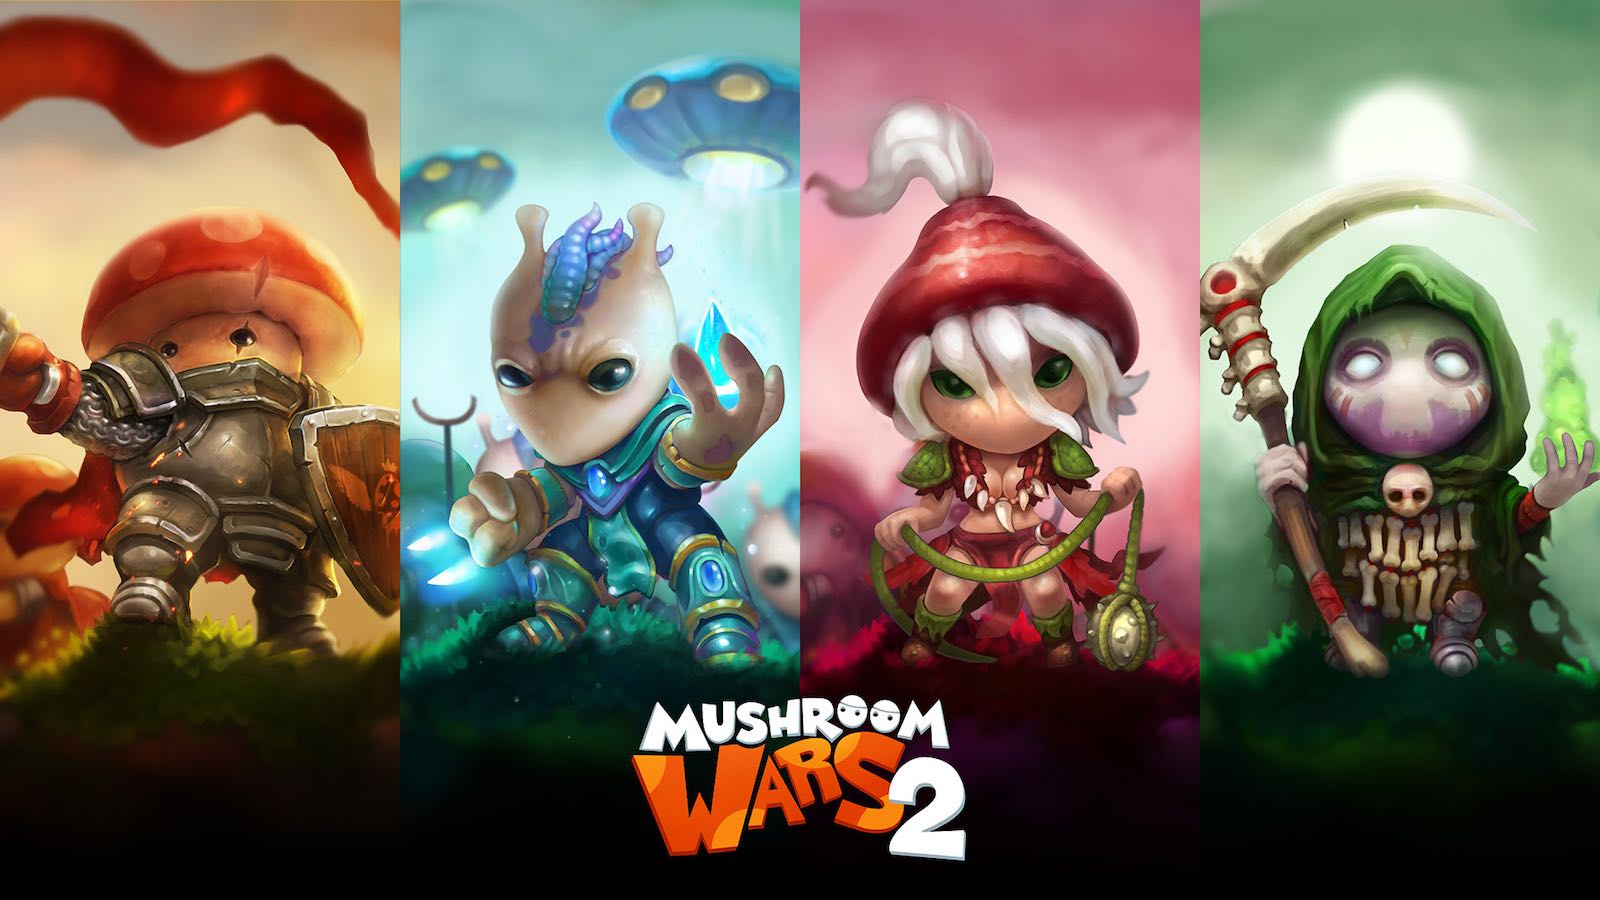 Mushroom Wars 2 App Store Download Hack Crack iOS 2